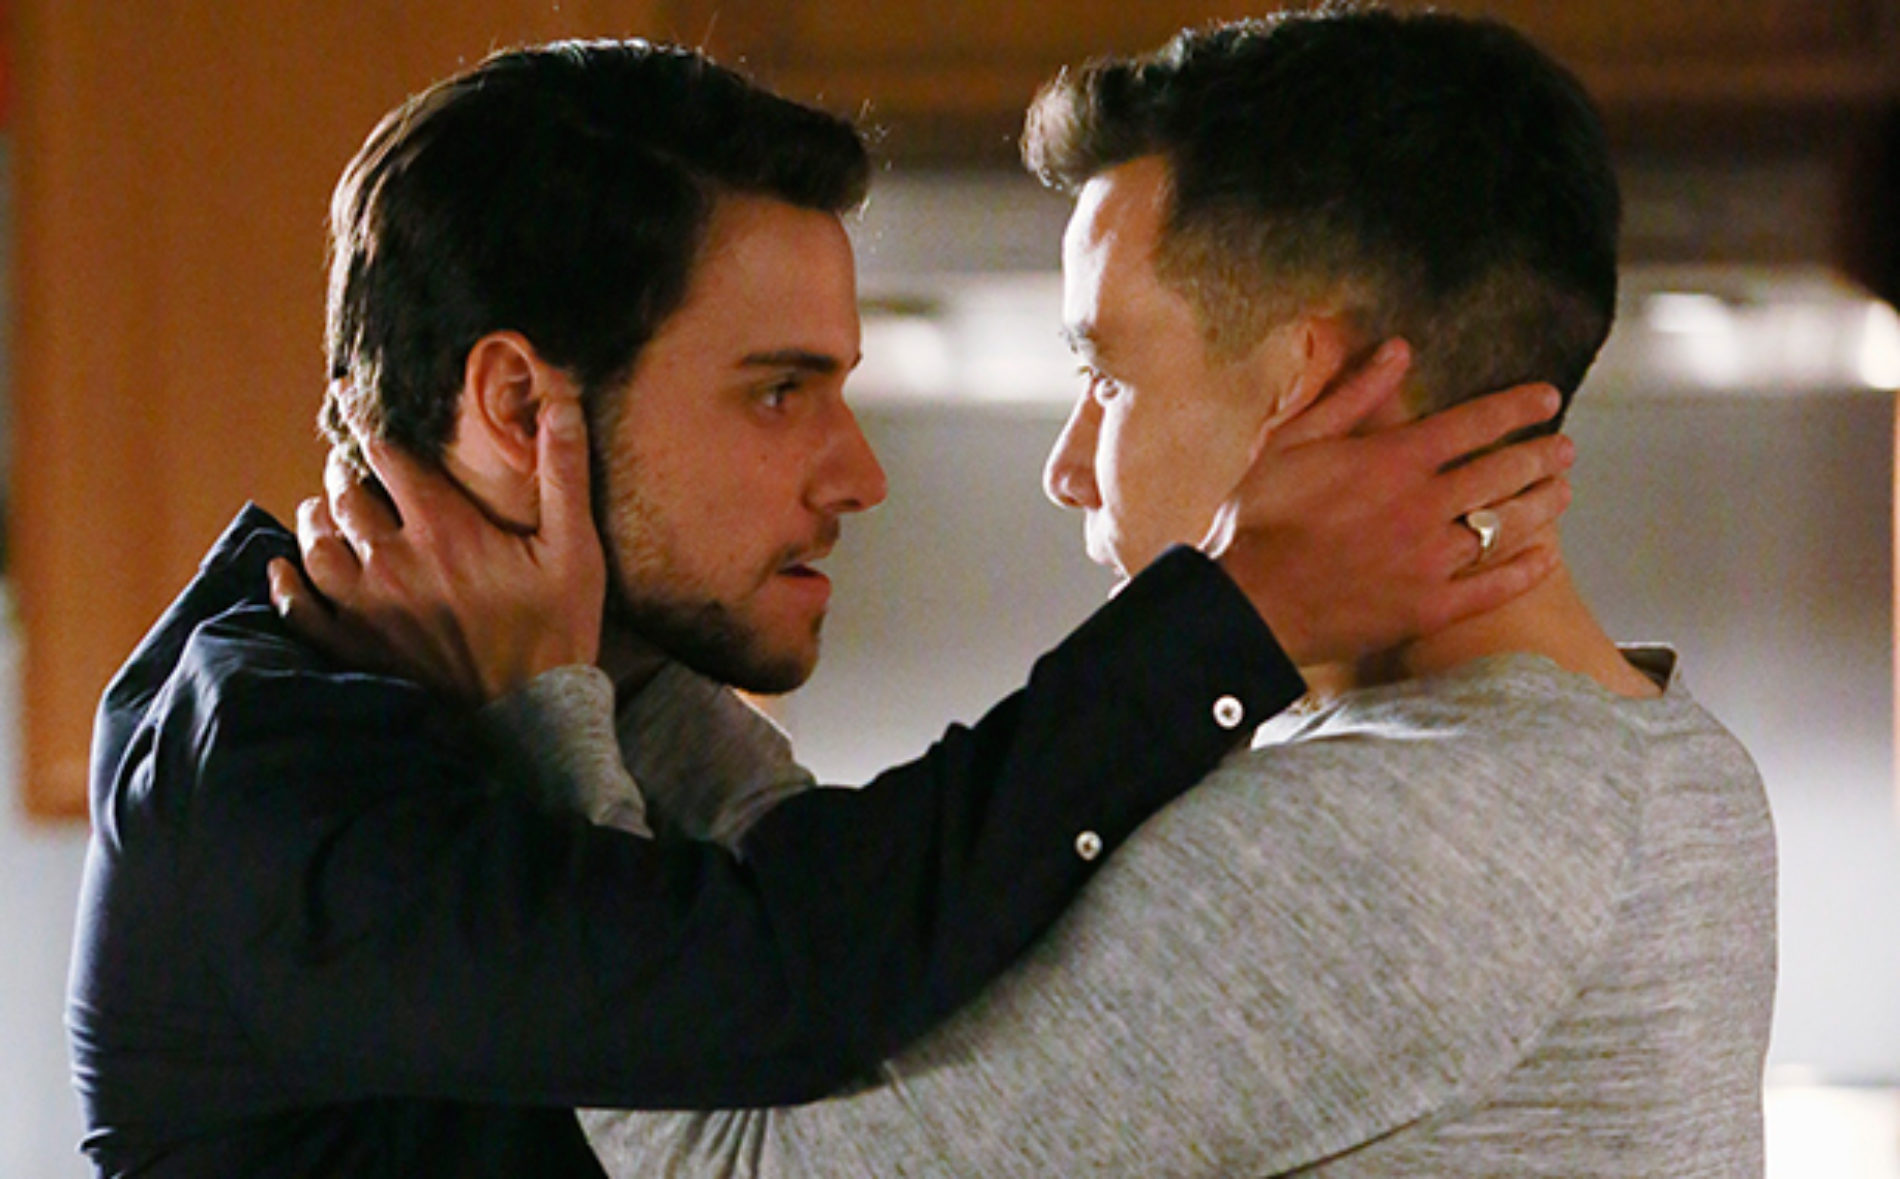 'How To Get Away With Murder' star Jack Falahee and Shonda Rhimes call out Italian TV's censorship of gay sex scene in show